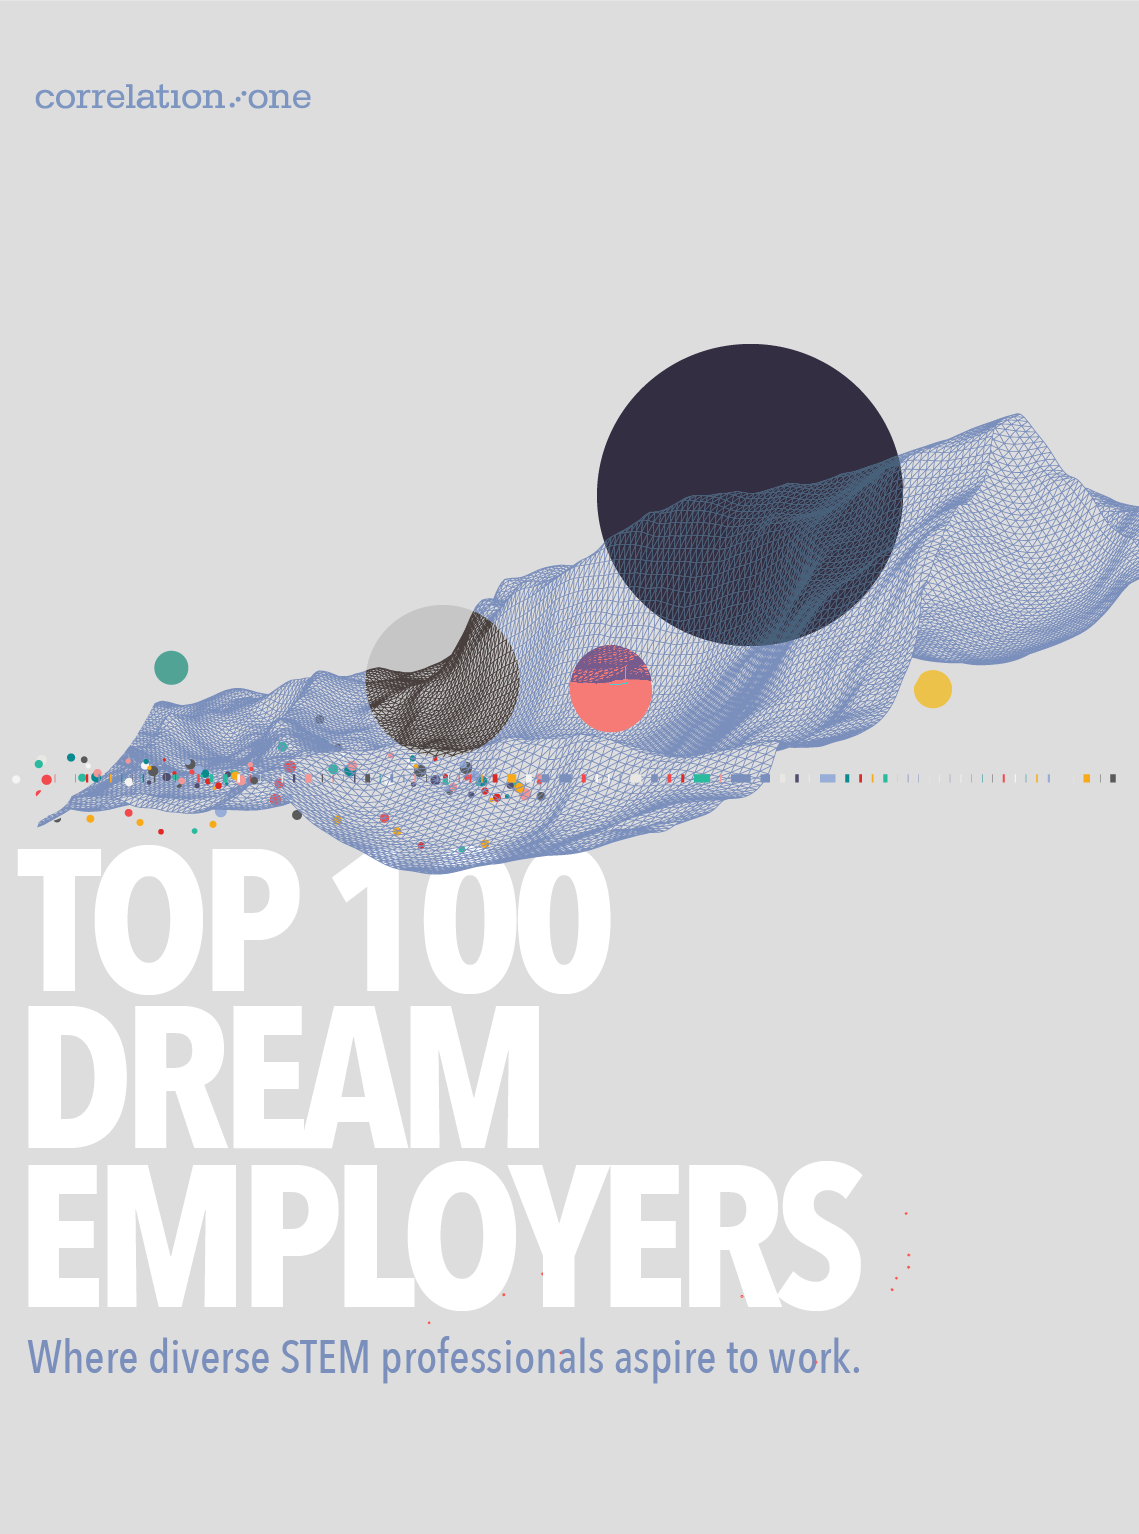 Data Science Solution for Enterprises: Top 100 Dream Employers: Where diverse STEM talent aspires to work